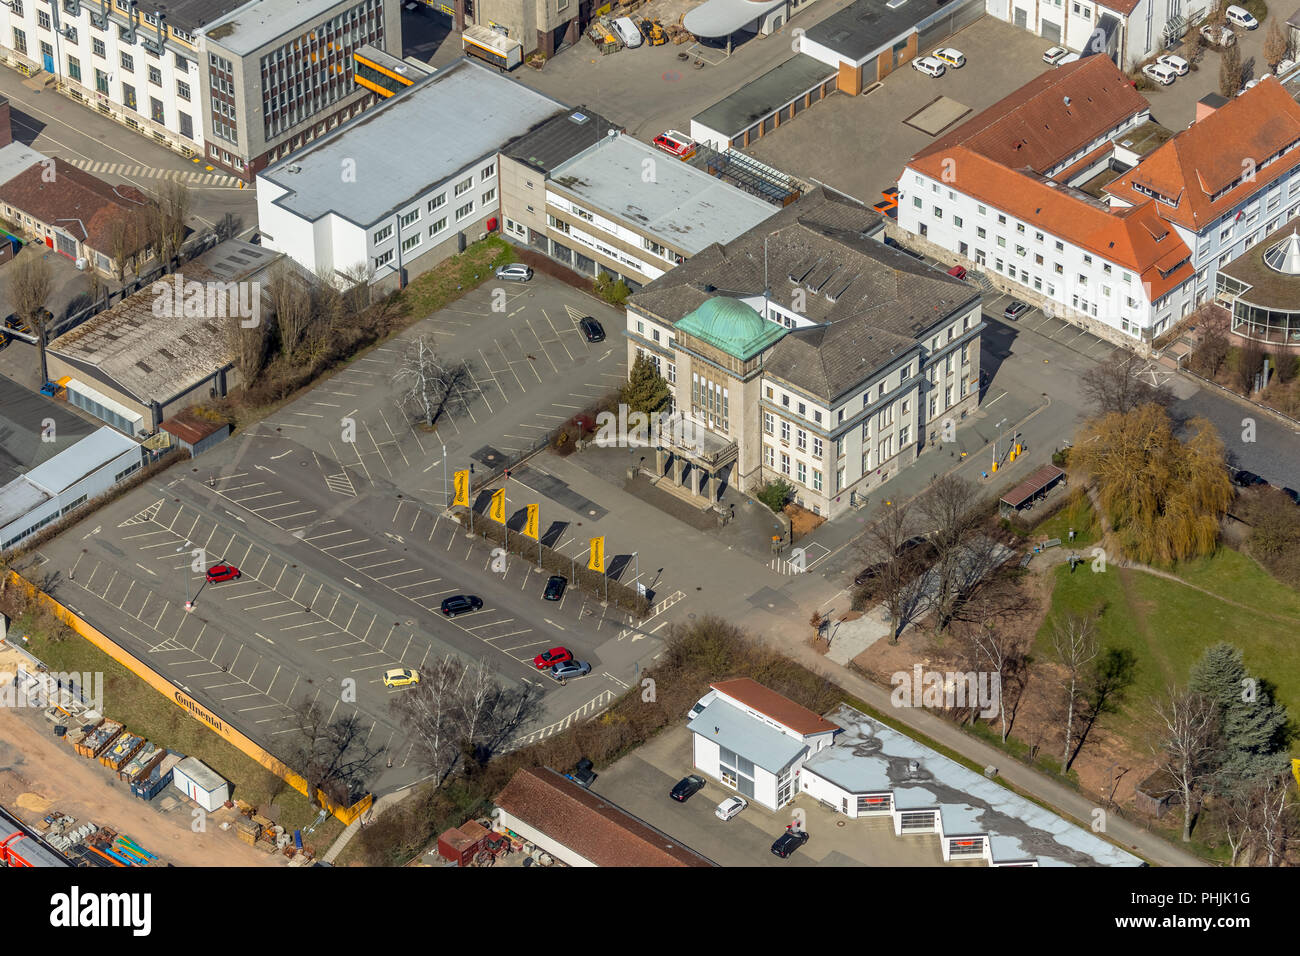 Train station forecourt, At the main station in Korbach. District town Korbach, district Waldeck-Frankenberg in Hessen, Germany, district town Korbach - Stock Image